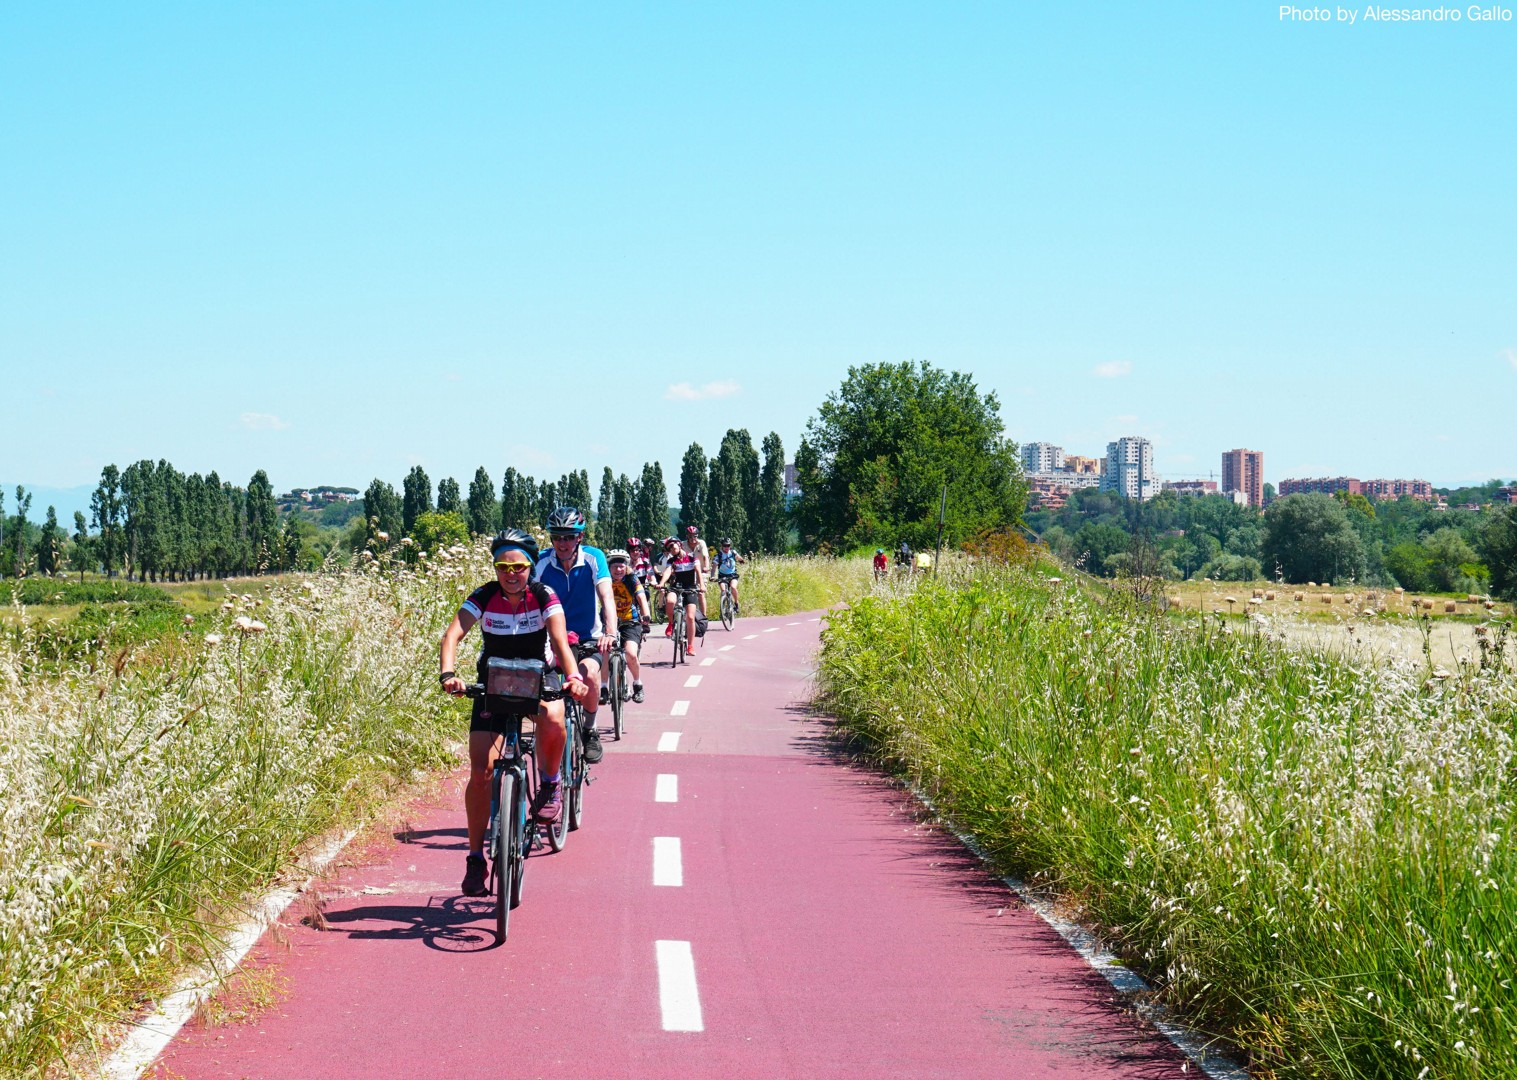 Guided-Leisure-Cycling-Holiday-Italy-Via-Francigena-Tuscany-to-Rome-on-the-way-to-rome - Italy - Via Francigena (Tuscany to Rome) - Guided Leisure Cycling Holiday - Leisure Cycling